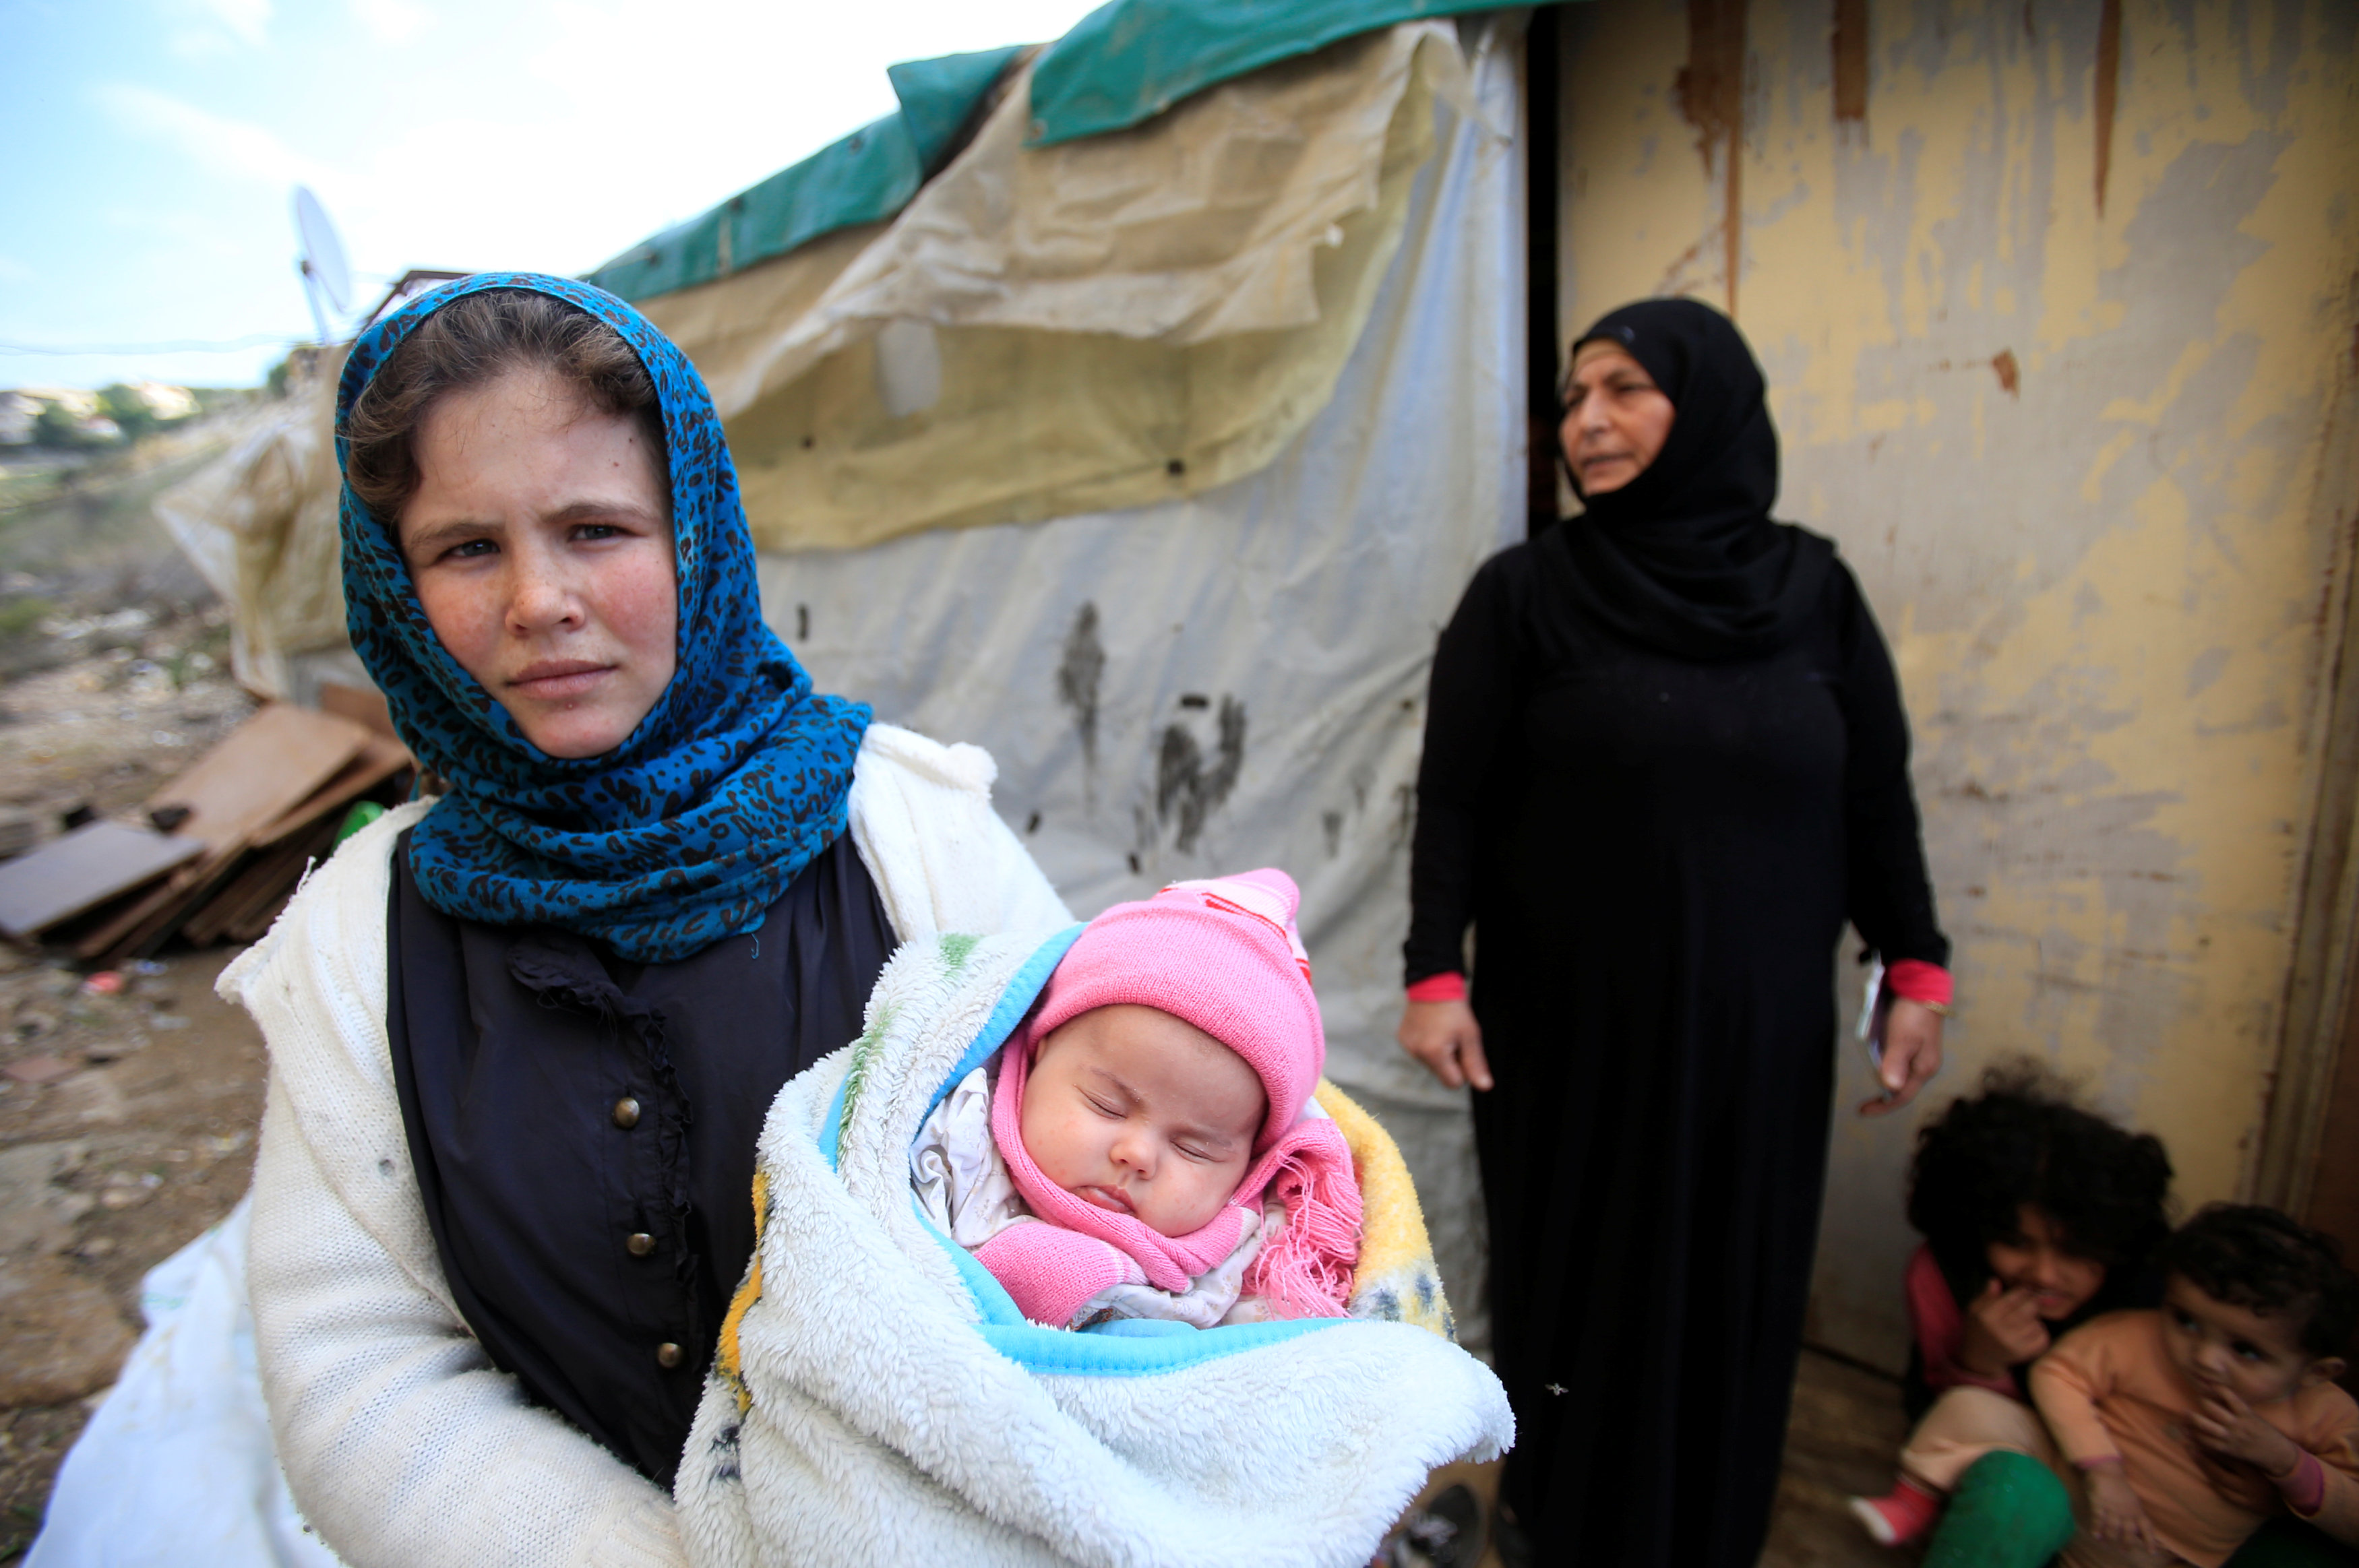 A Syrian refugee woman holds a child in Ain Baal village, near Tyre in southern Lebanon, November 27, 2017. Picture taken November 27, 2017.